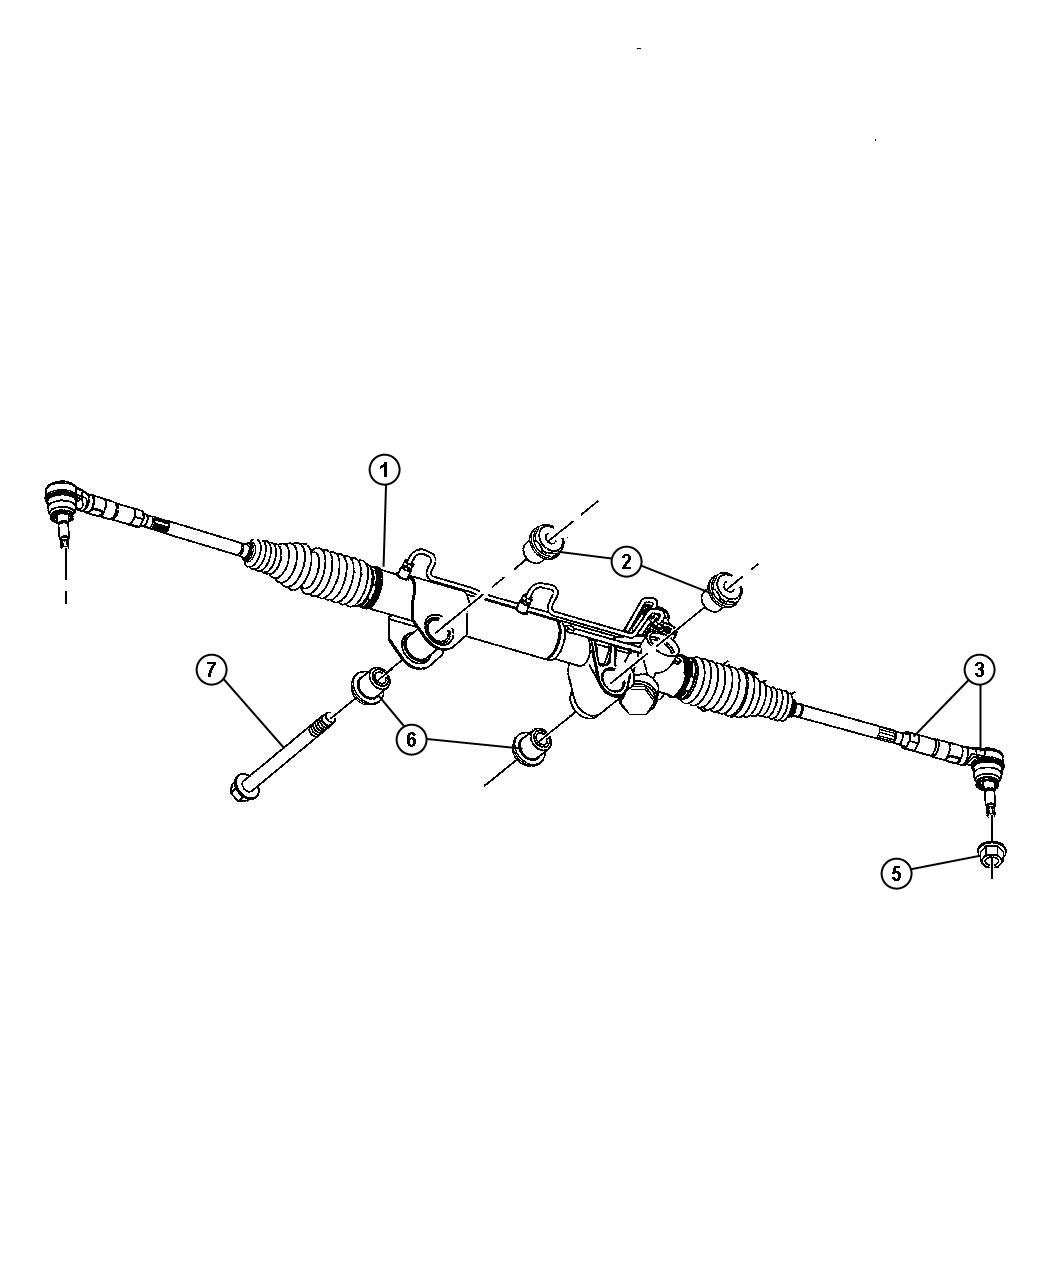 Dodge Ram Gear Used For Rack And Pinion 20x9 0